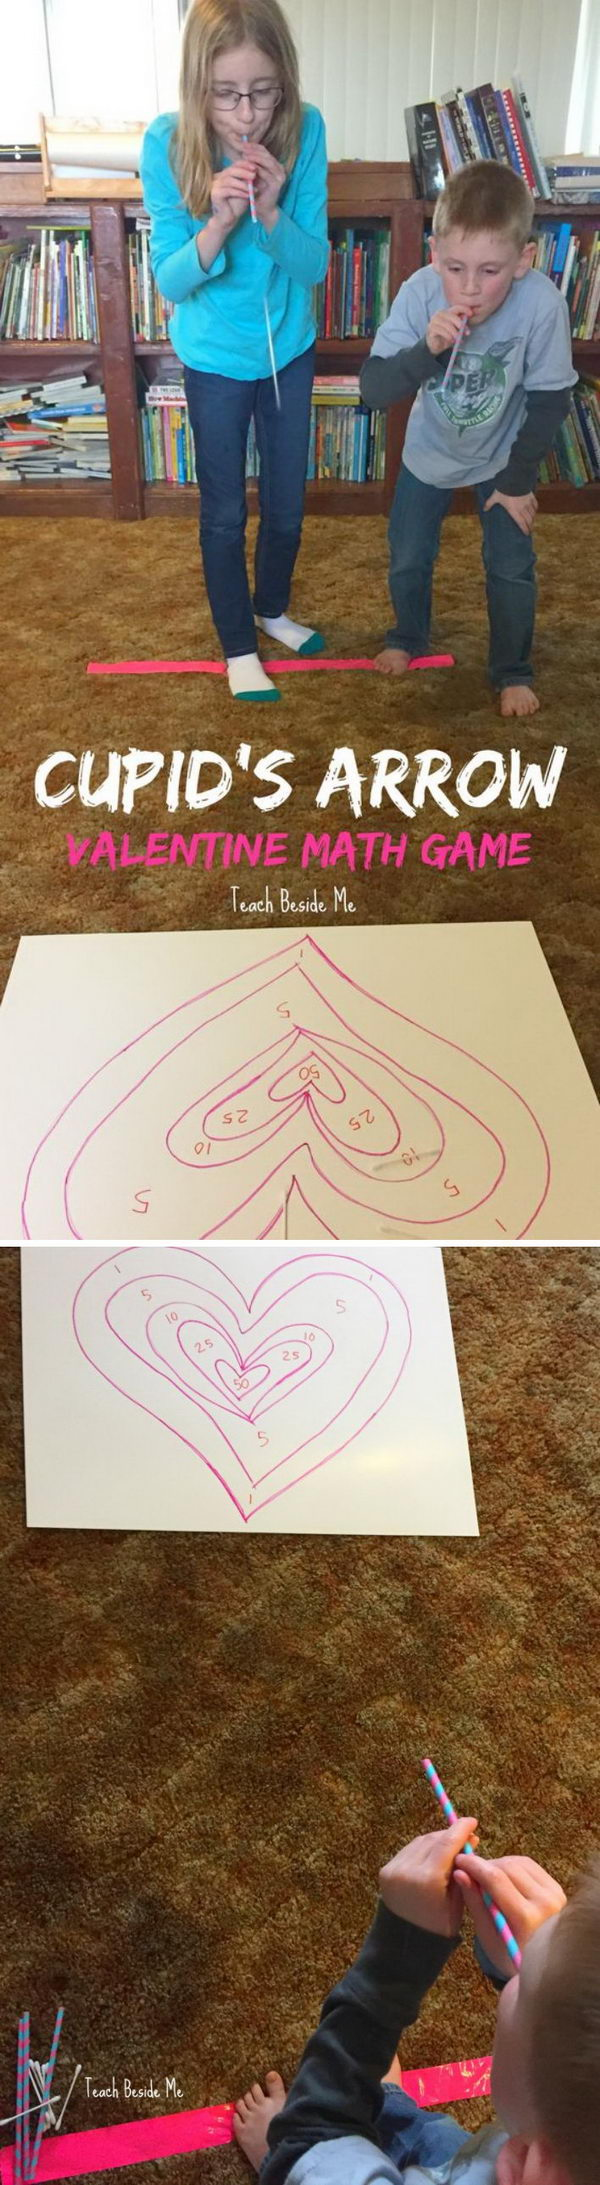 Cupid's Arrow Math Learning Game.